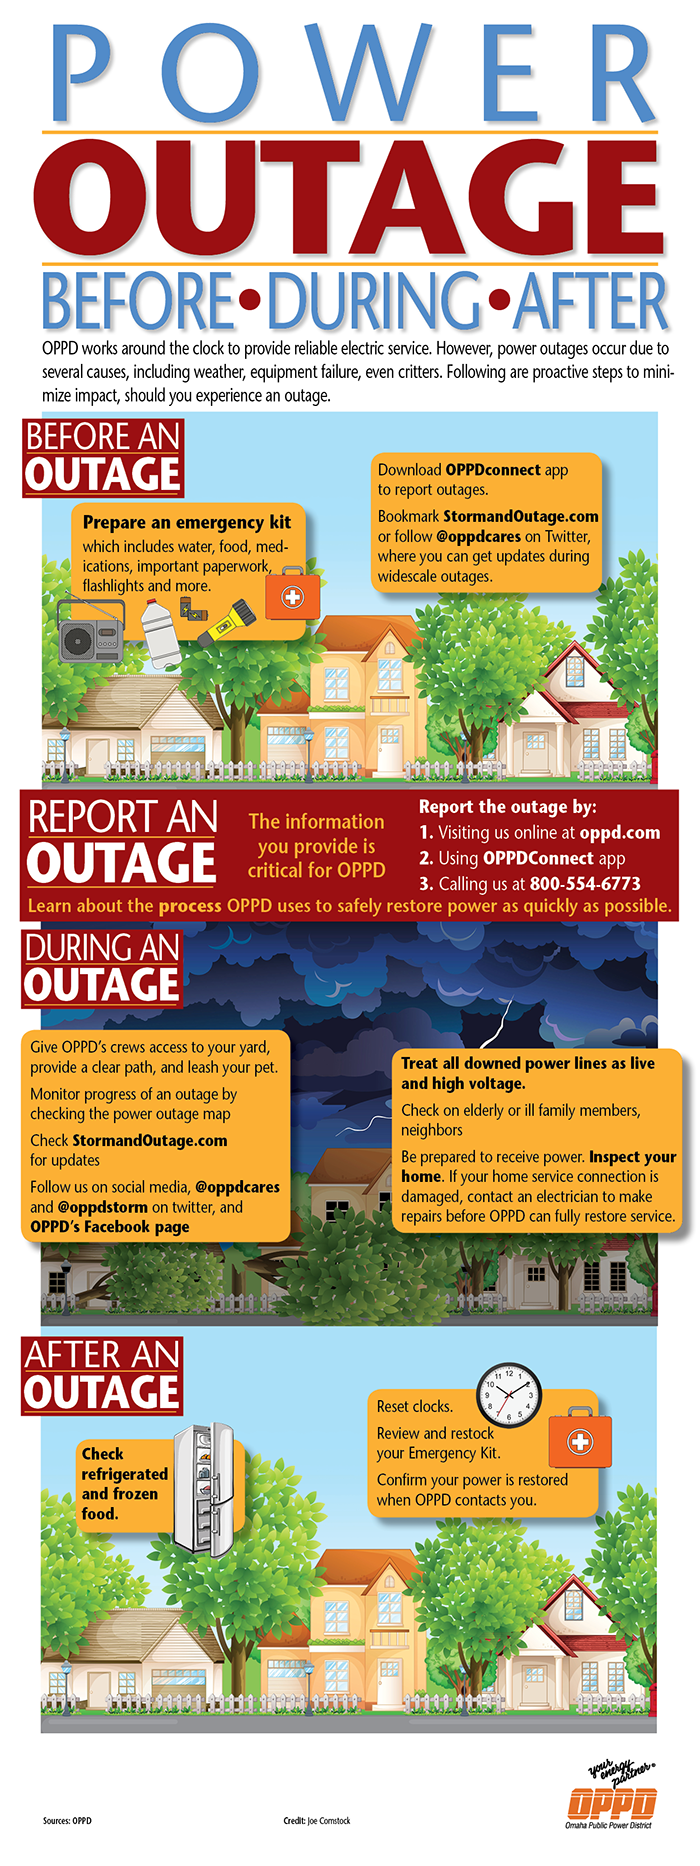 OUTAGE B-D-A INFOGRAPHIC_sized